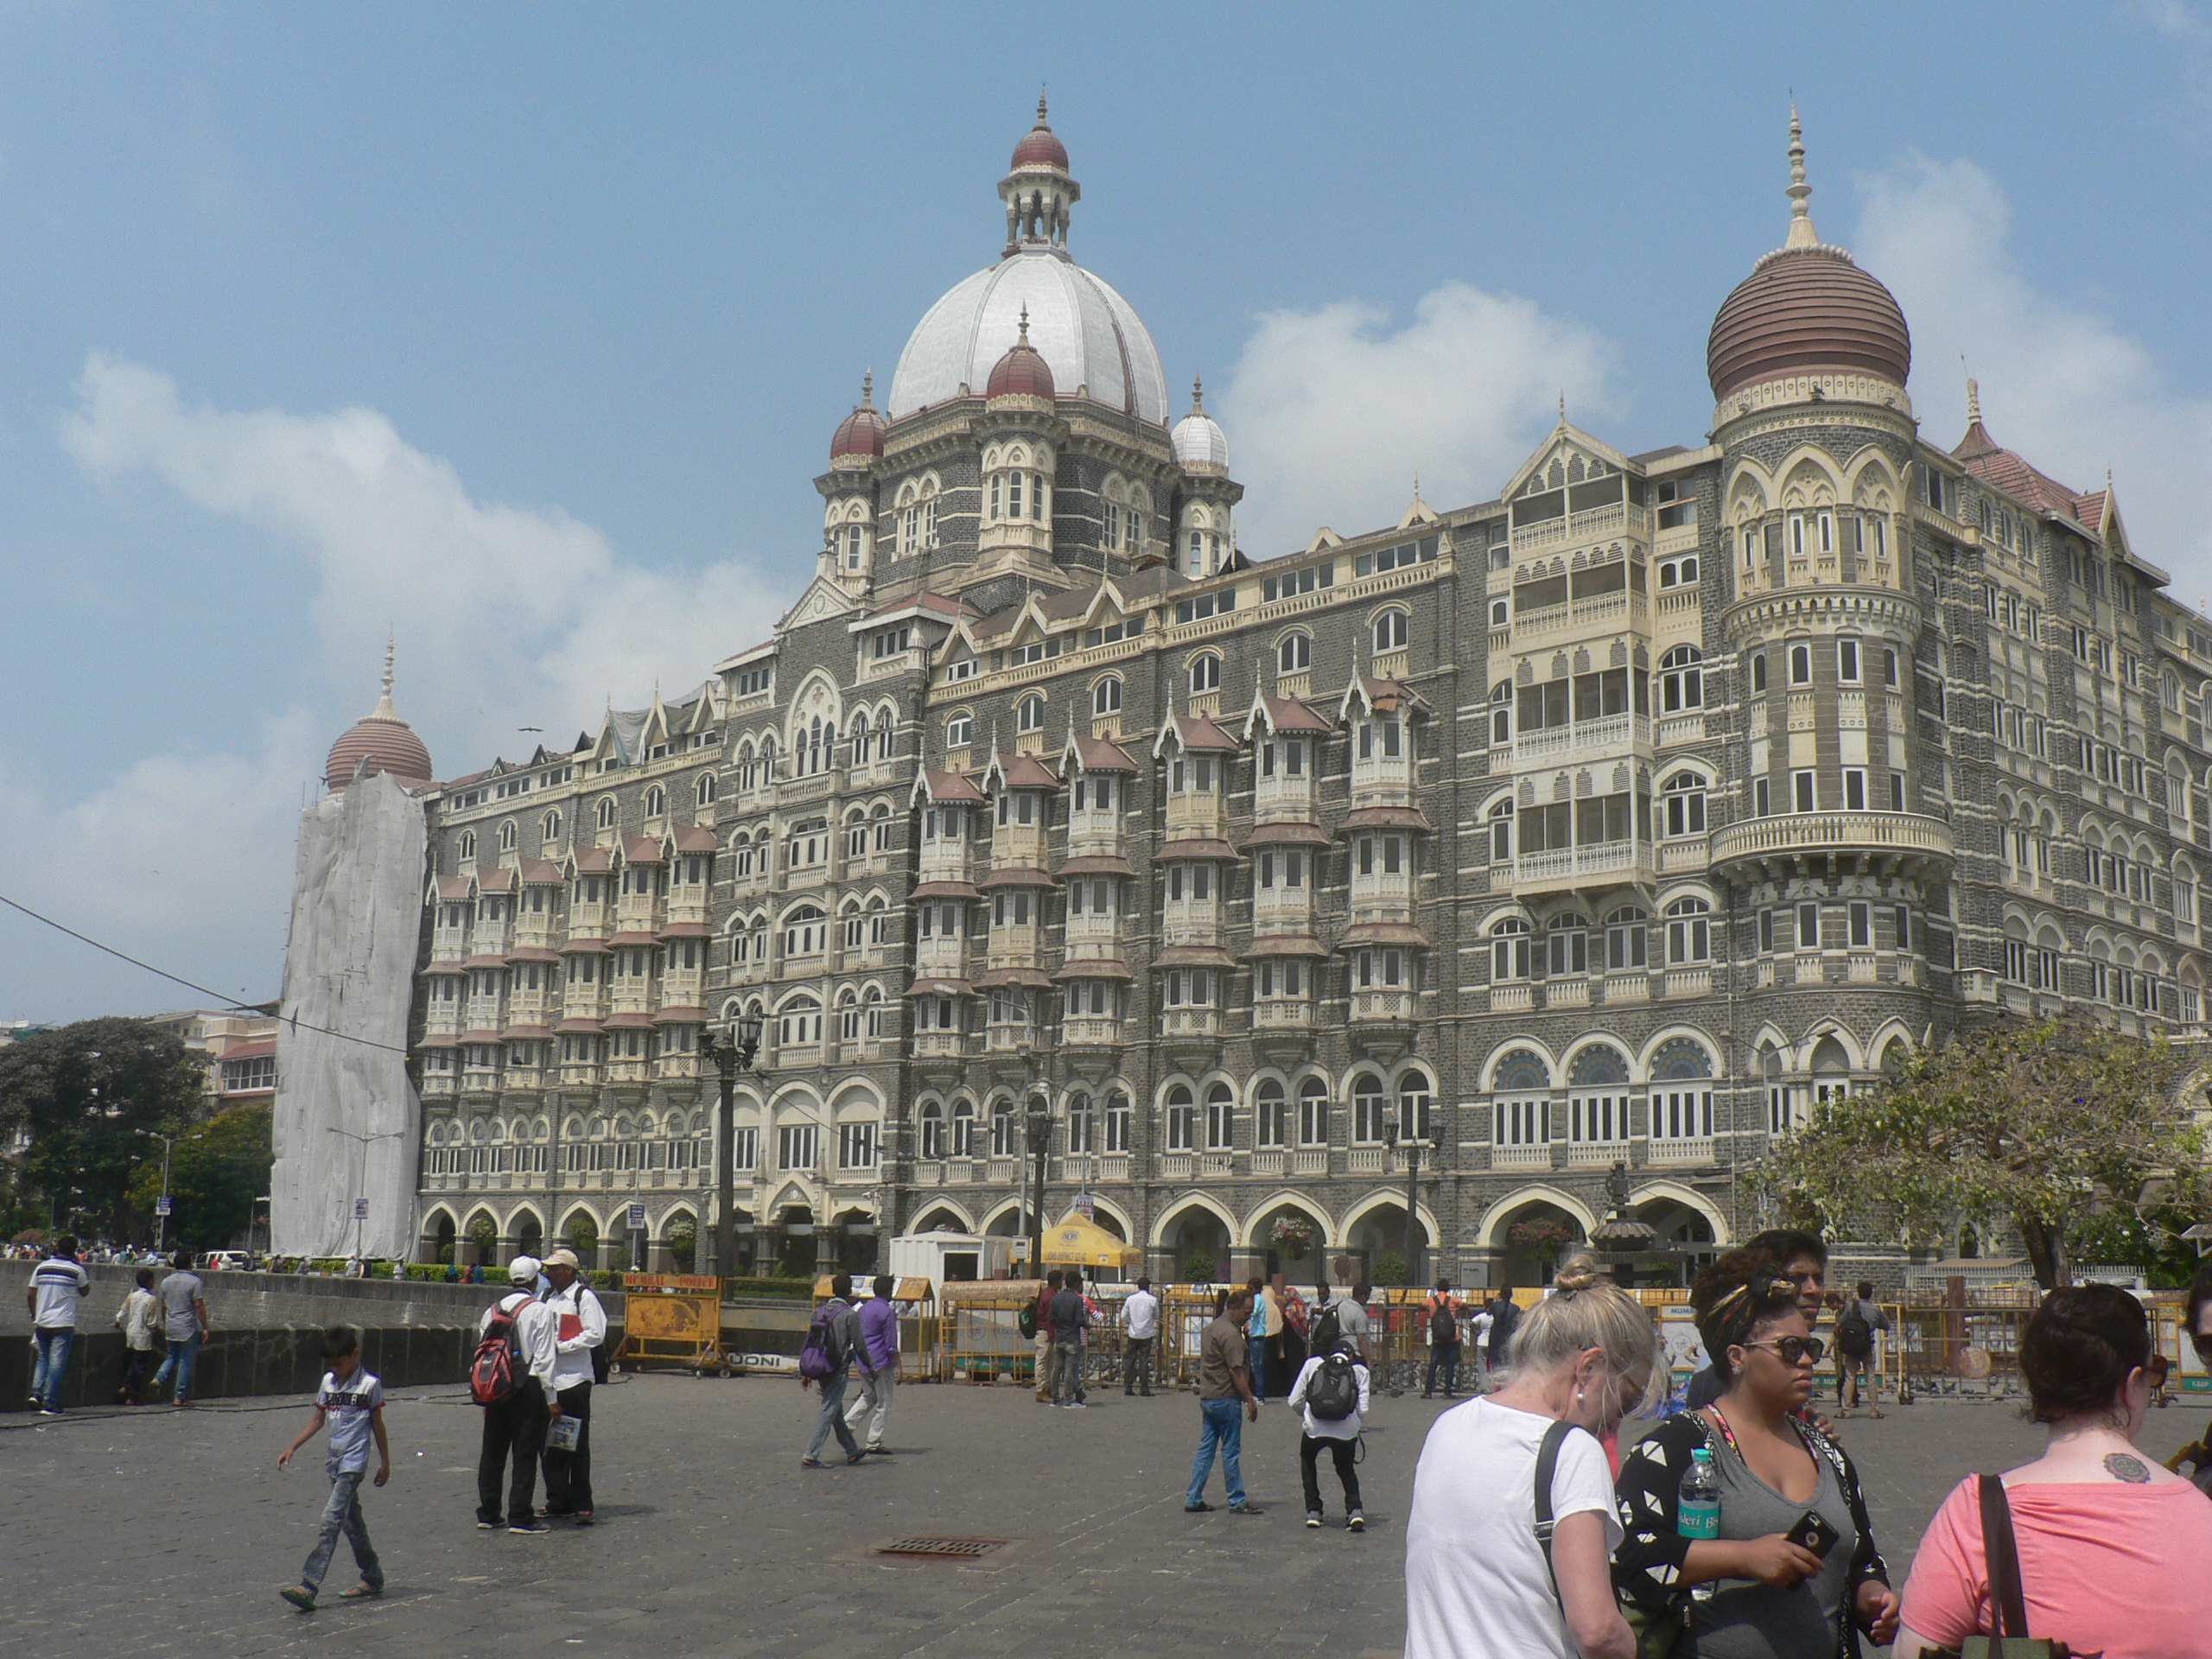 Mumbai s history and architecture at Taj Mahal Palace